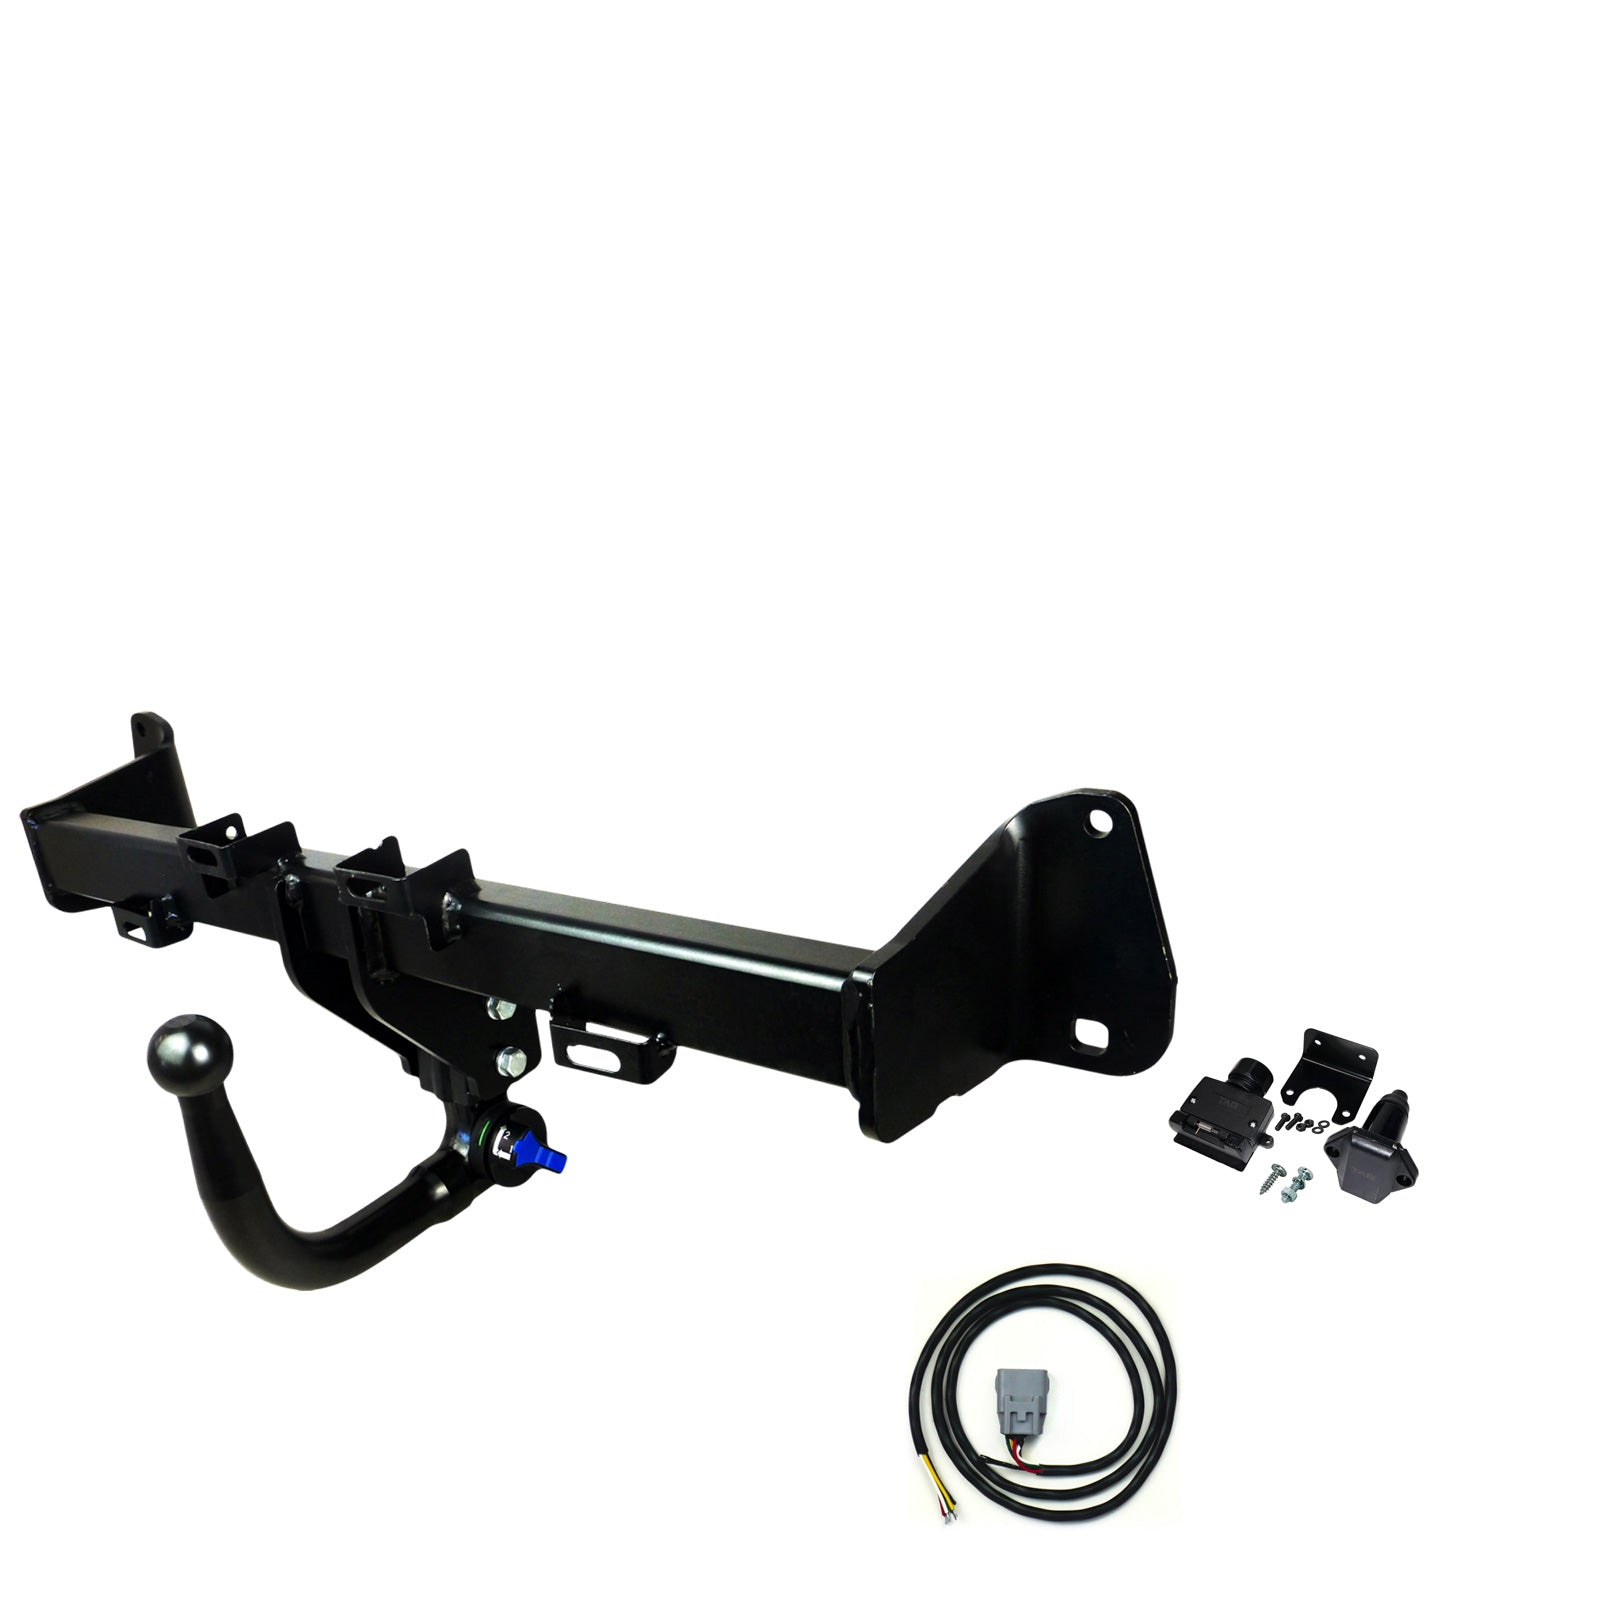 TAG Towbars European Style Tongue to suit Audi A6 (07/2011 - 0), A7 (07/2011 - 0)